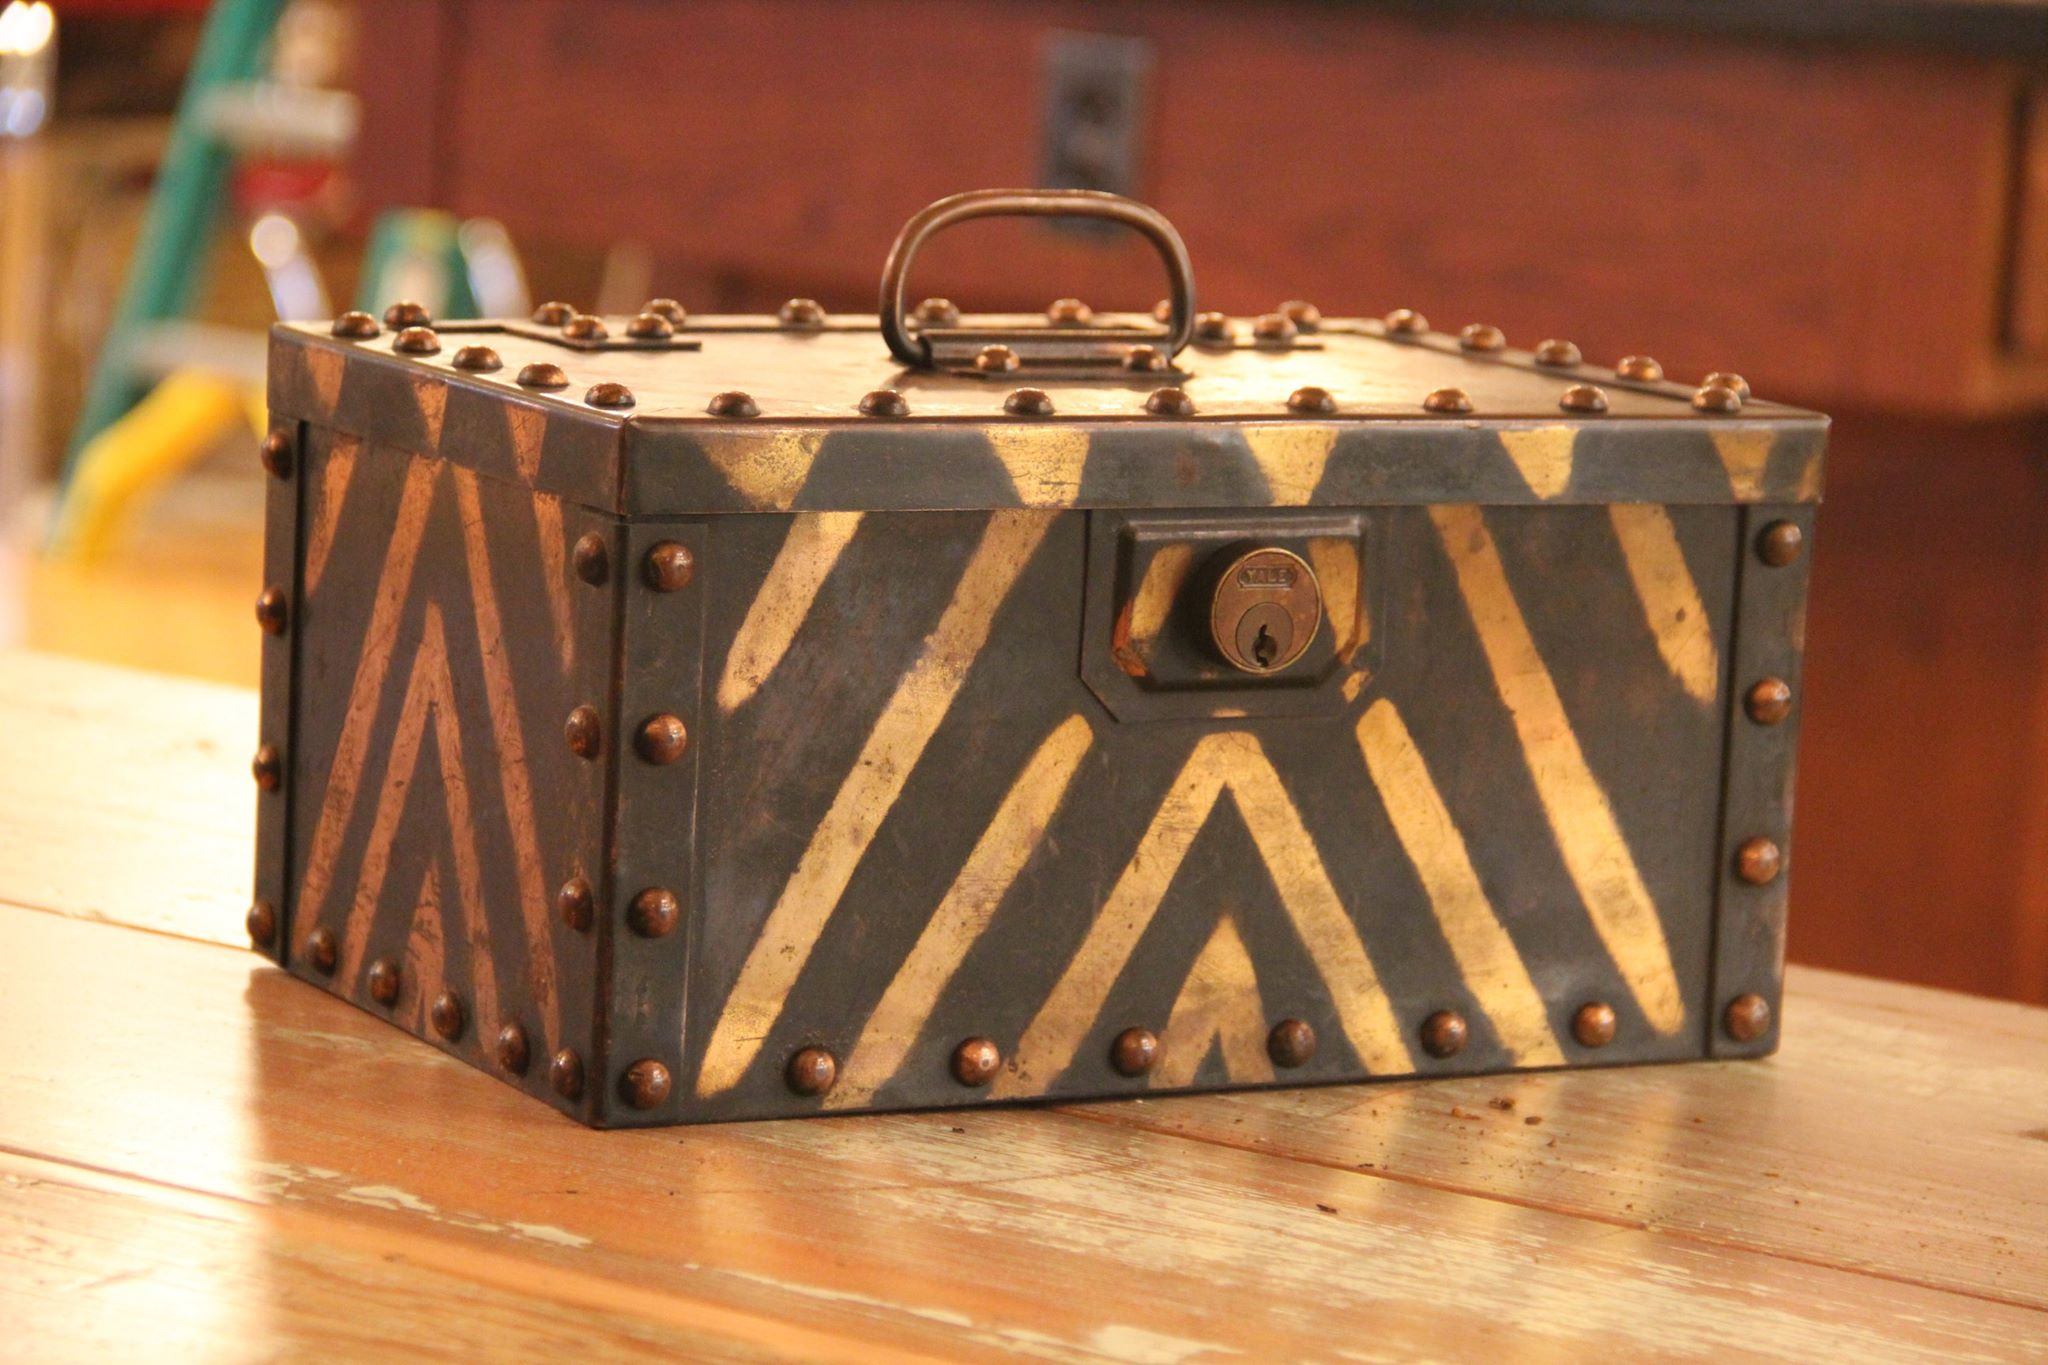 Circa 1905 strongbox with oversized hob nail rivets combined and Japanned copper detail! SOLD